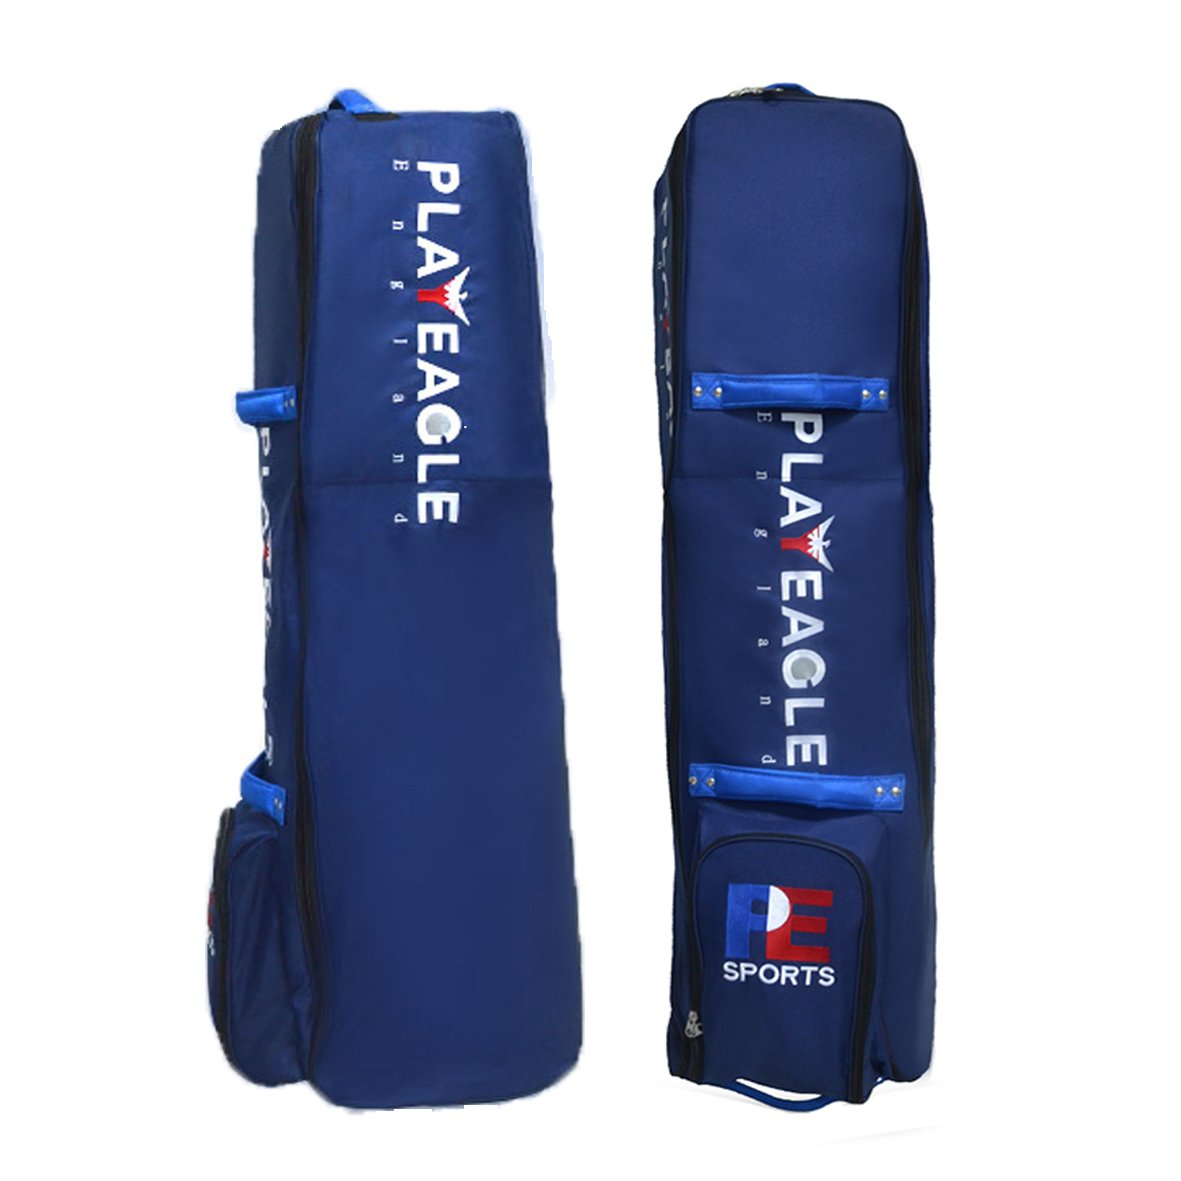 PLAYEAGLE Airplane Golf Bag for Travel with Password Lock Foldable Waterproof Nylon Golf Bag Cover Zipper with Wheels(Blue)